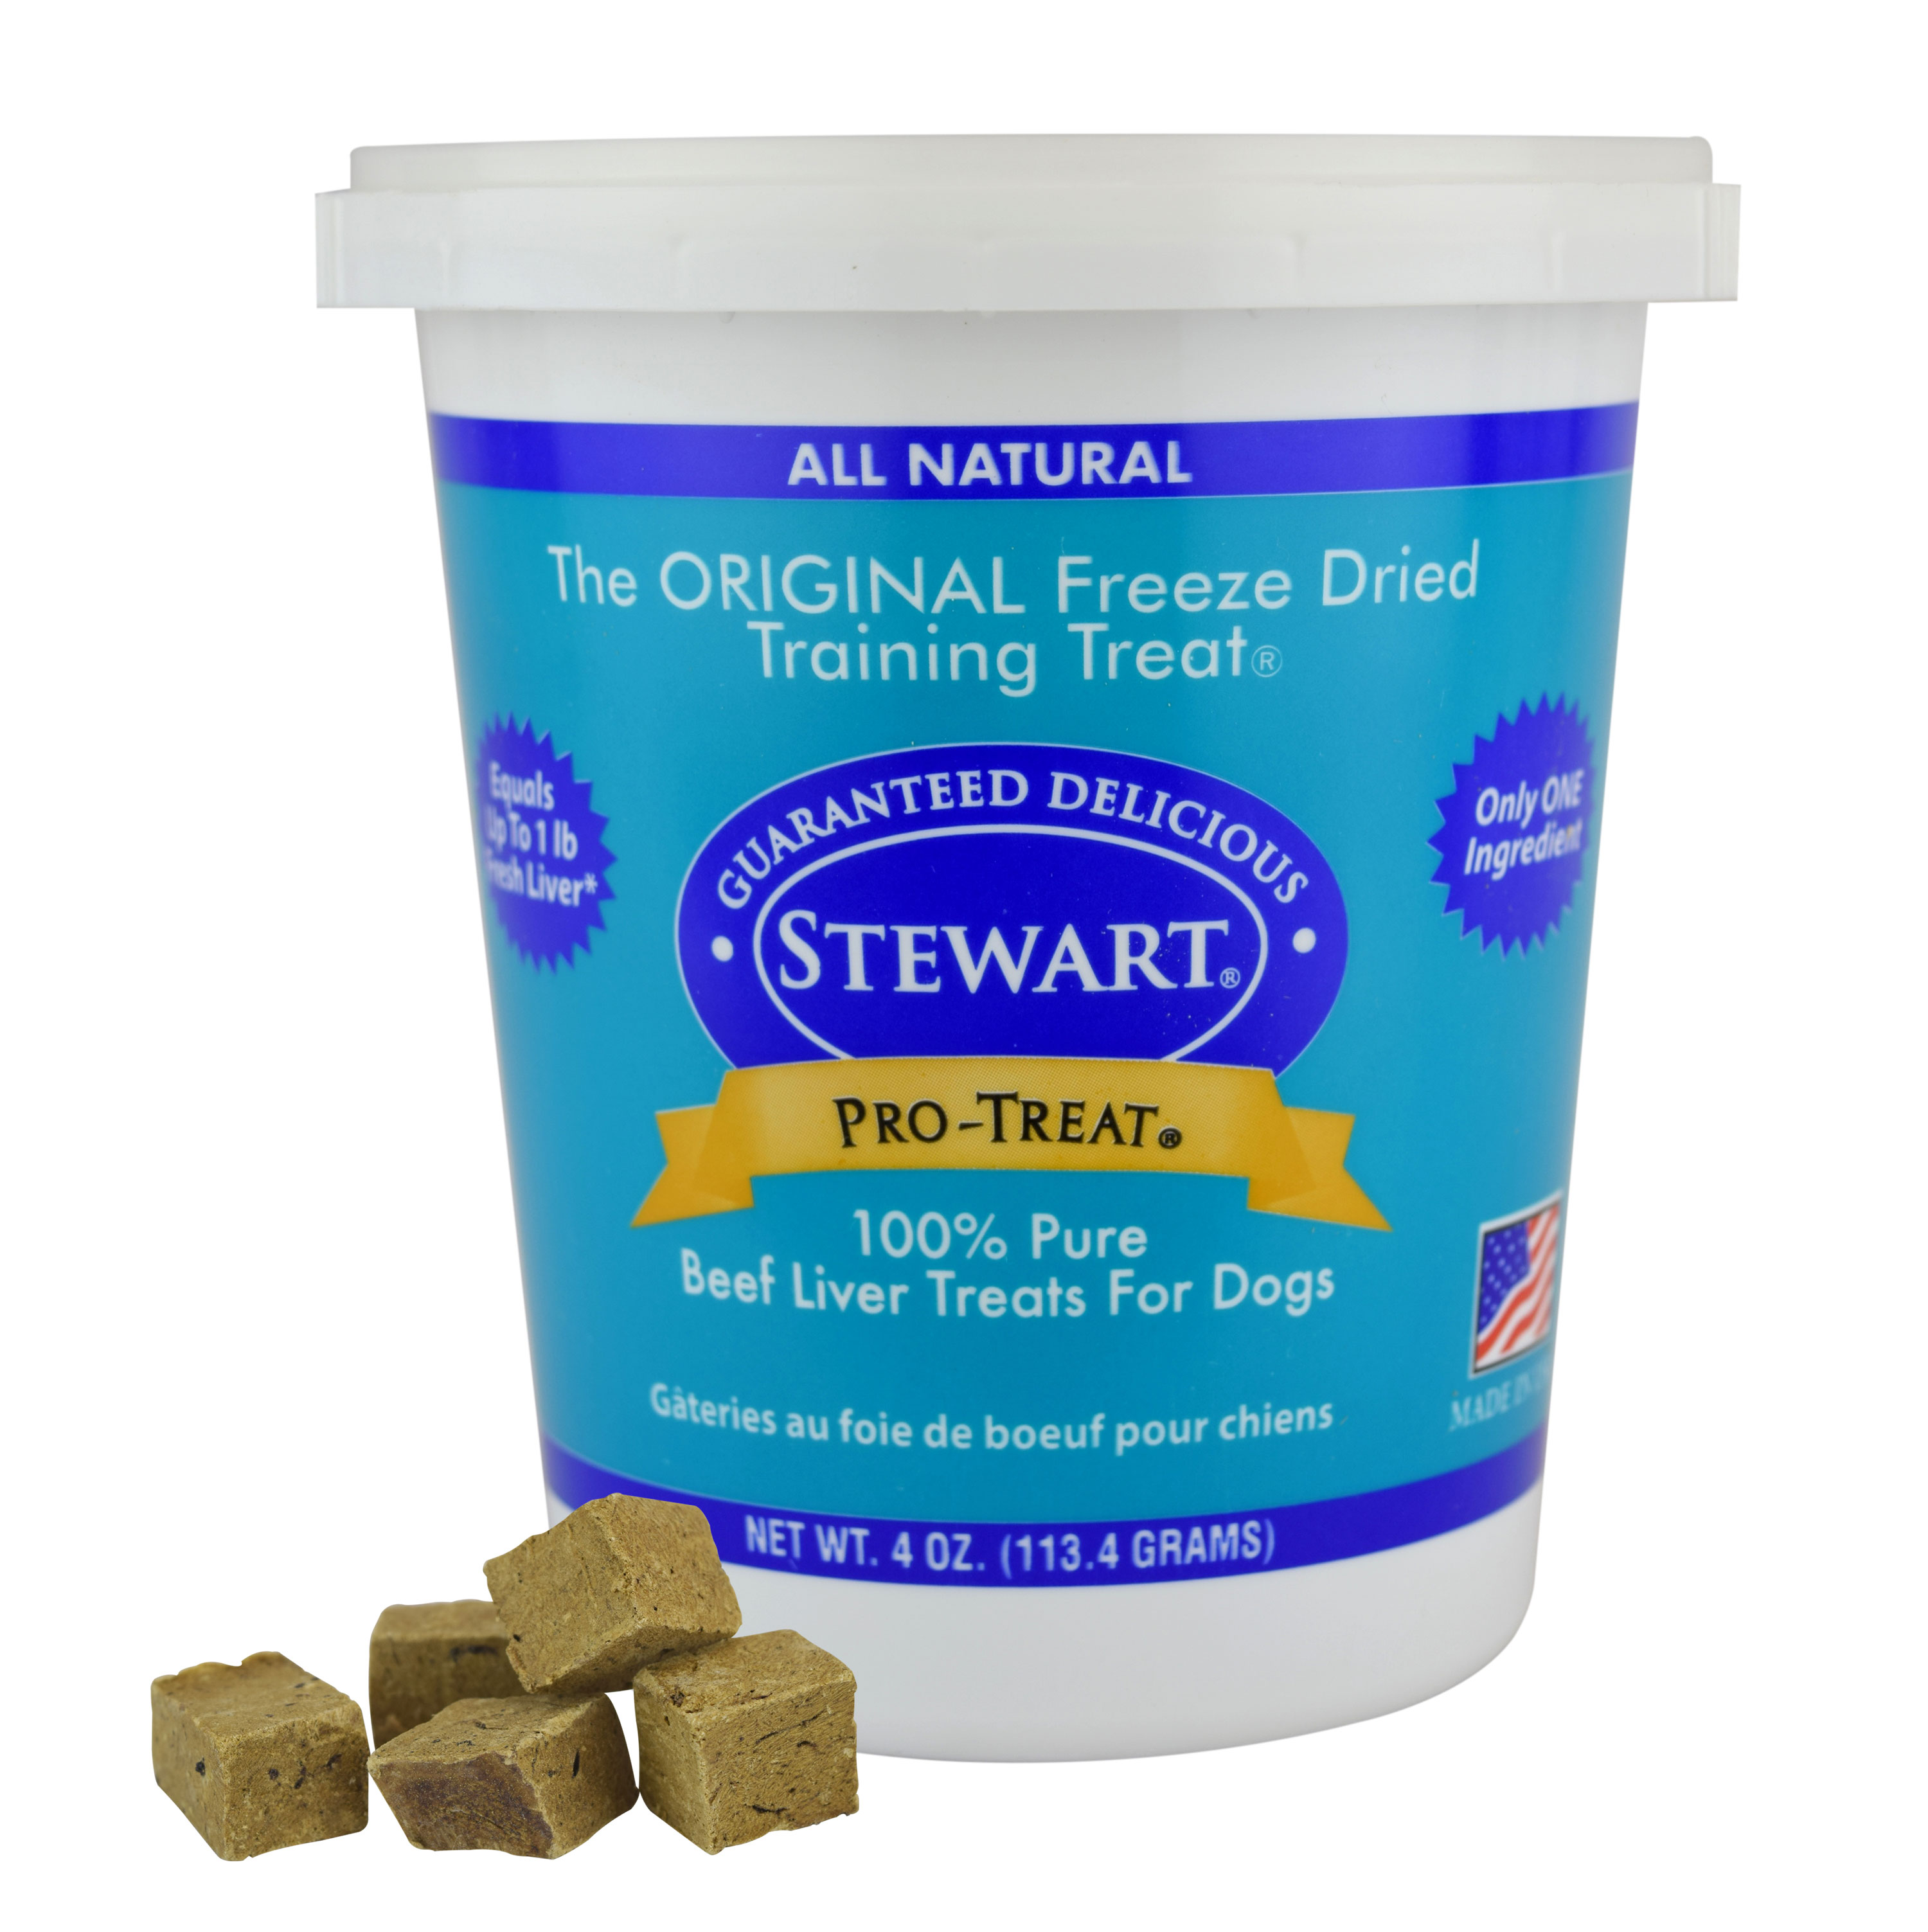 Stewart Freeze Dried Beef Liver Dog Treats by Pro-Treat 4 oz. Tub